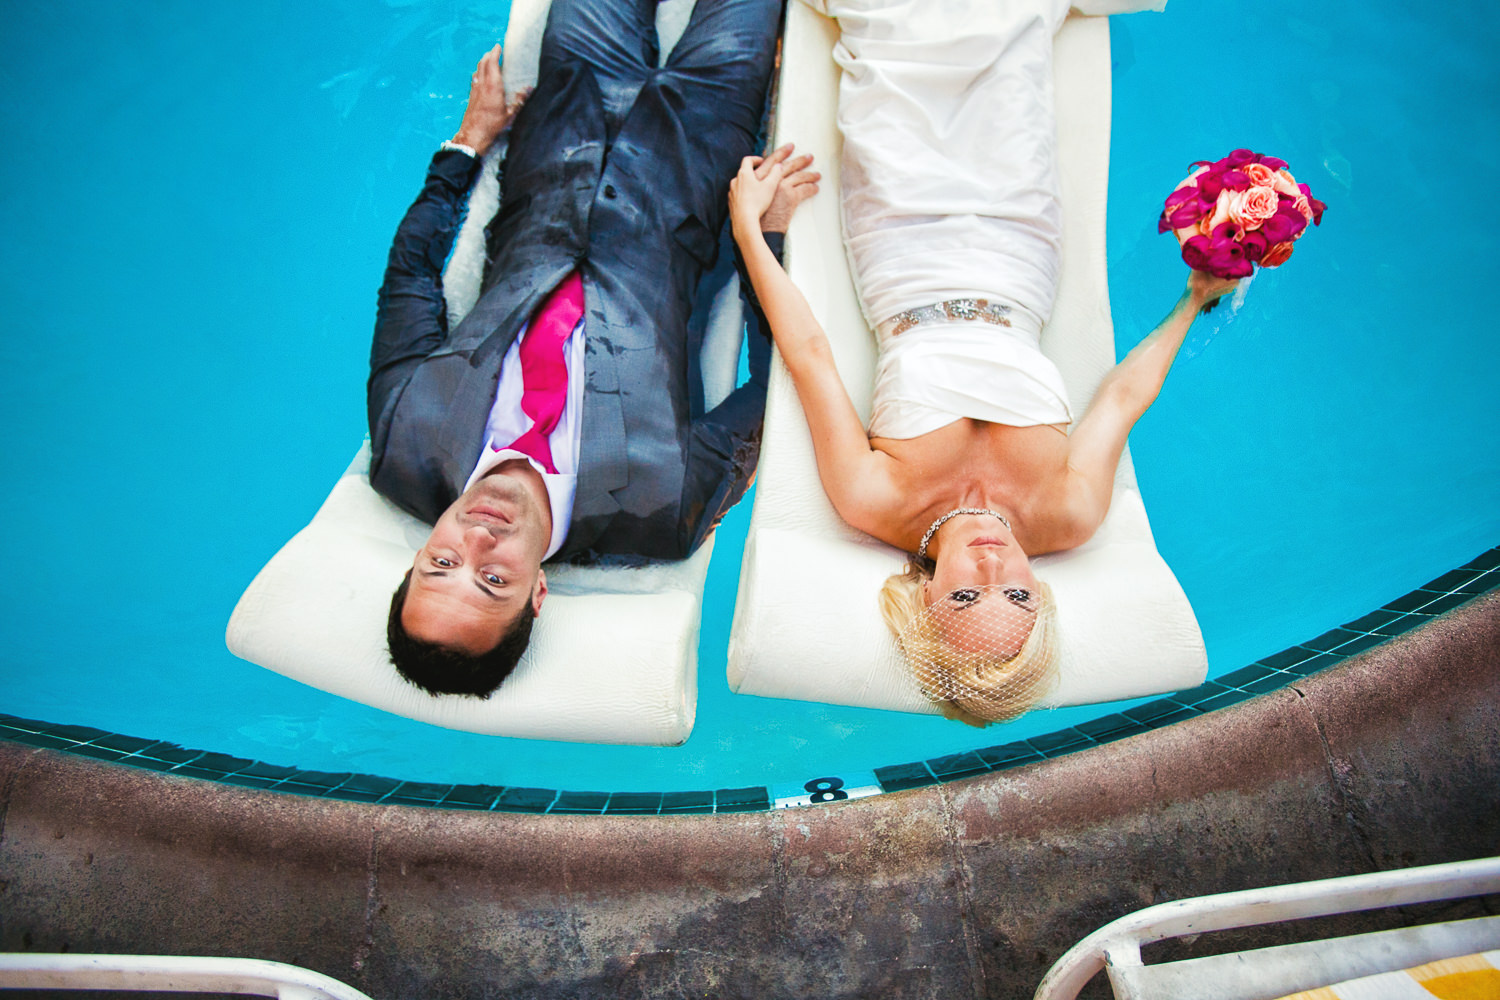 Avalon Palm Springs Photographer - Holding hands in the pool fully dressed